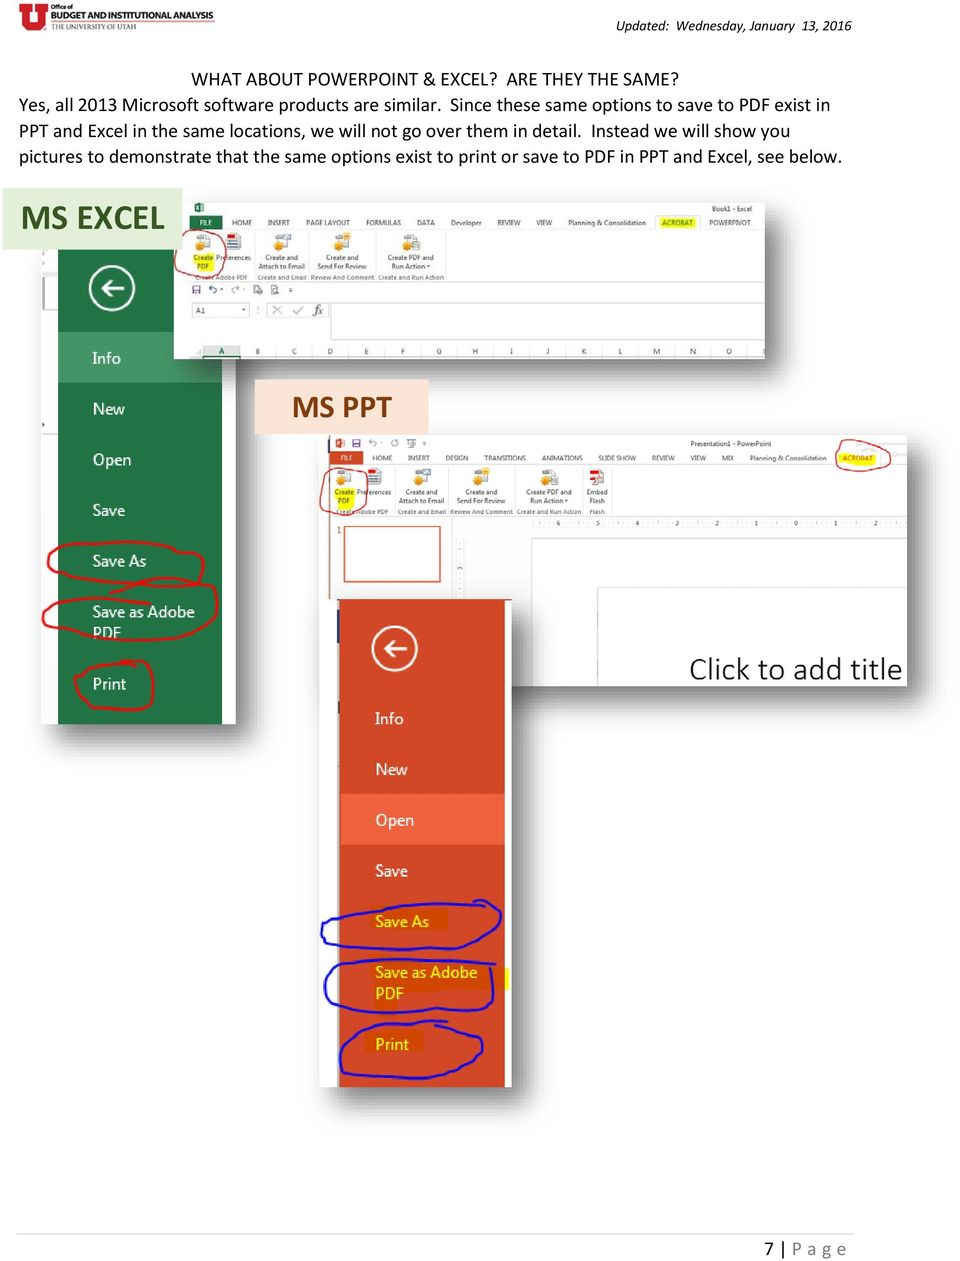 Since these same options to save to PDF exist in PPT and Excel in the same locations, we will